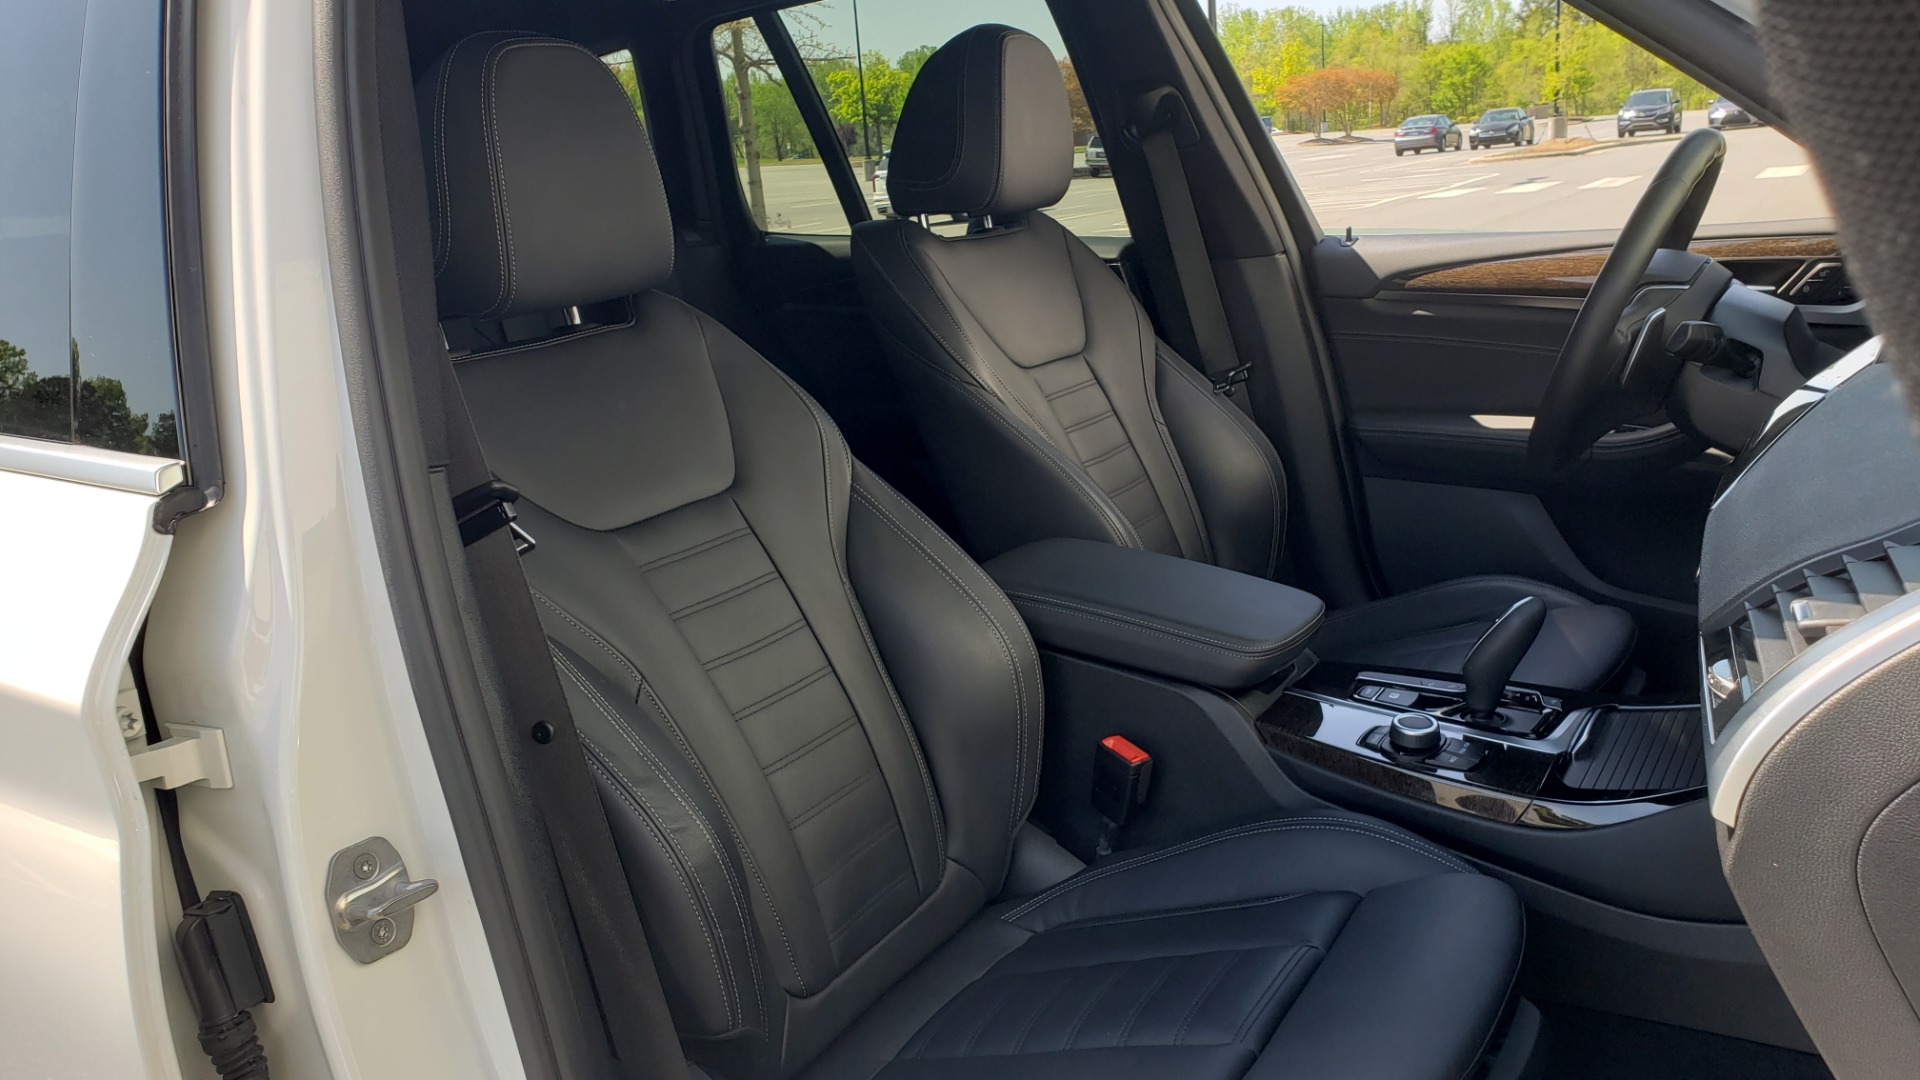 Used 2018 BMW X3 XDRIVE30I / CONV PKG / PANO-ROOF / HTD STS / REARVIEW for sale $33,995 at Formula Imports in Charlotte NC 28227 67